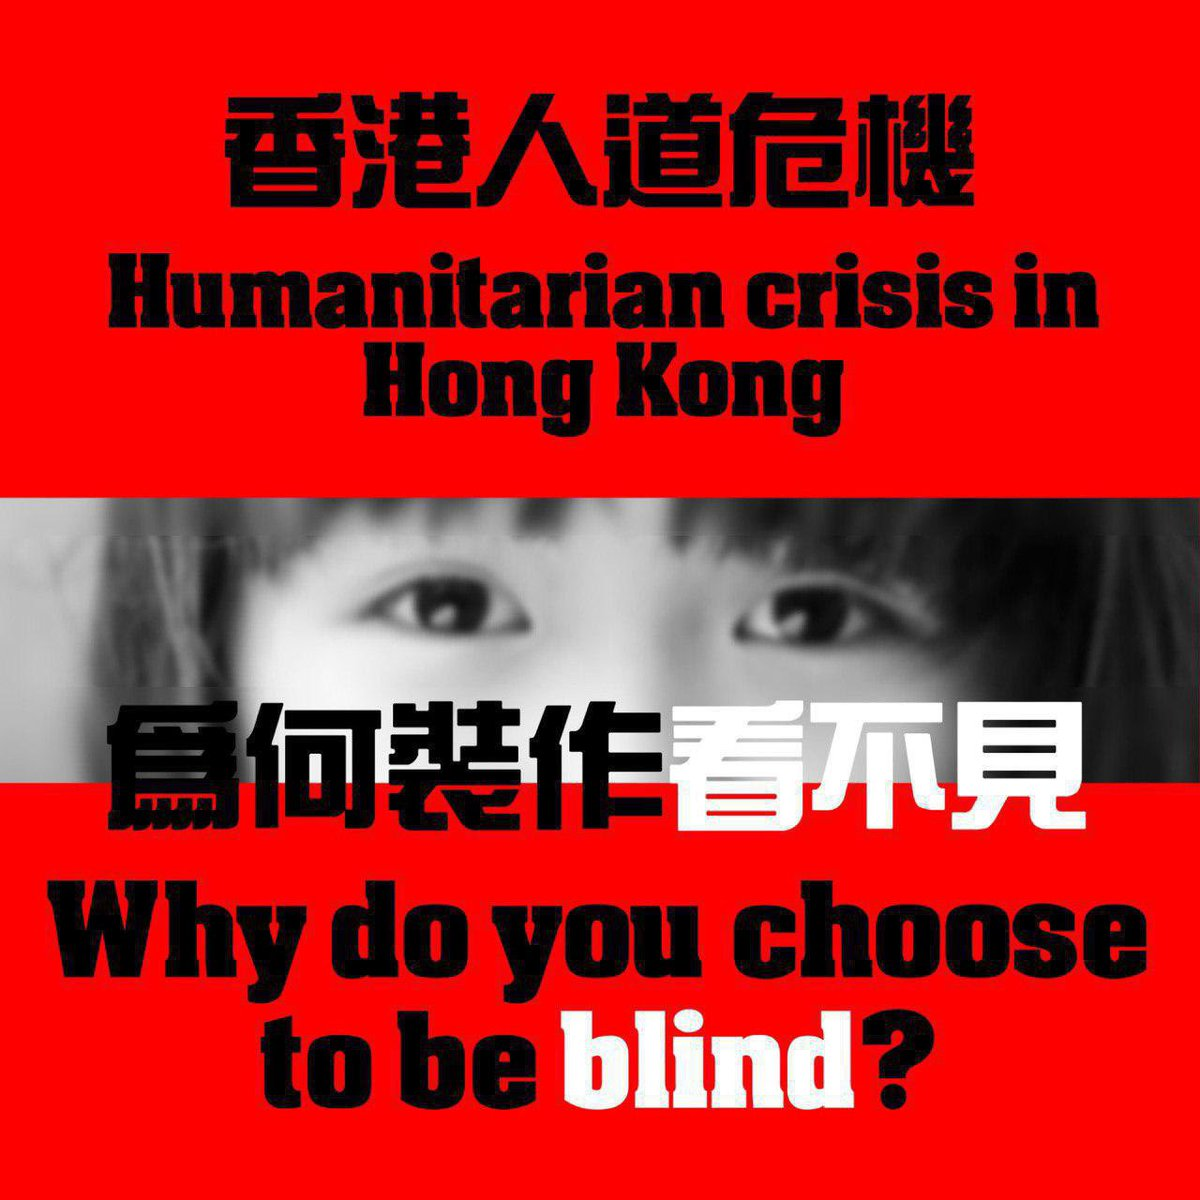 this is her selection #hongkongpolicebrutality #BoycottMulan<br>http://pic.twitter.com/KXfh2IEZbq